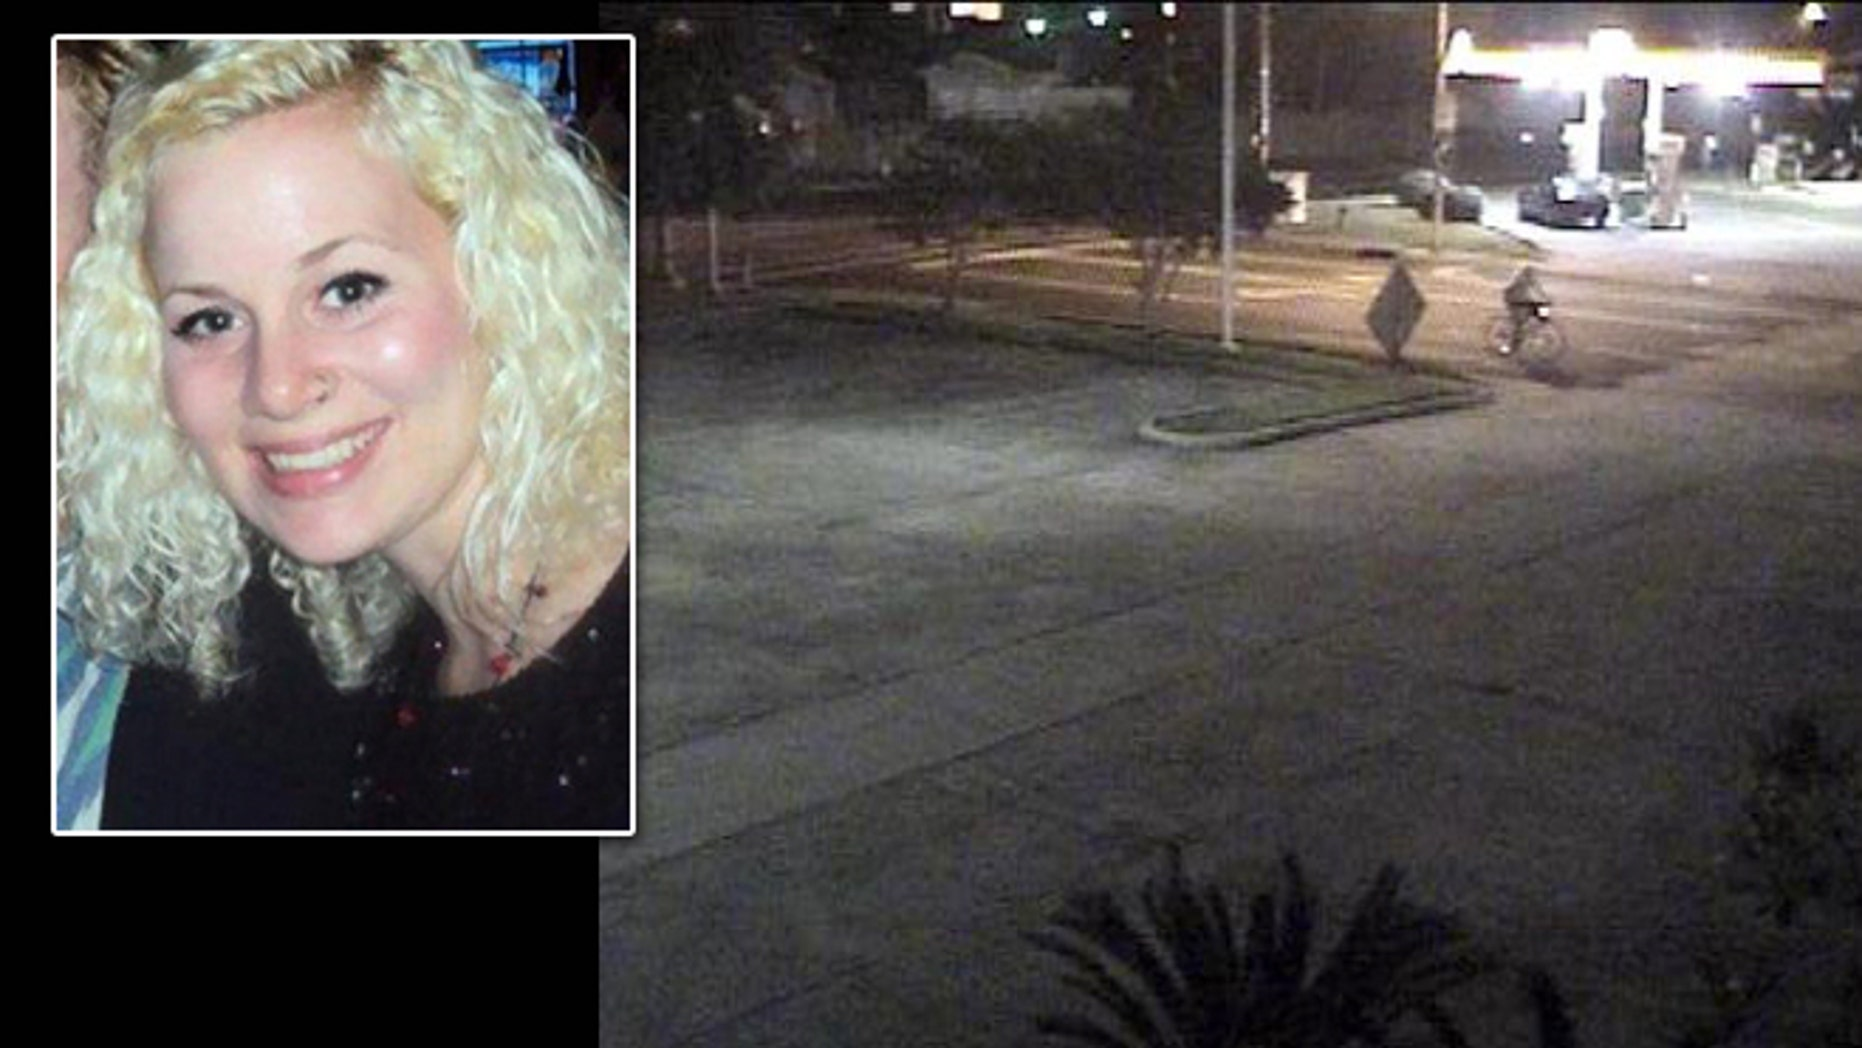 Louisiana college student Michaela Shunick, who disappeared May 19, is thought to be the bicyclist seen on this surveillance video.